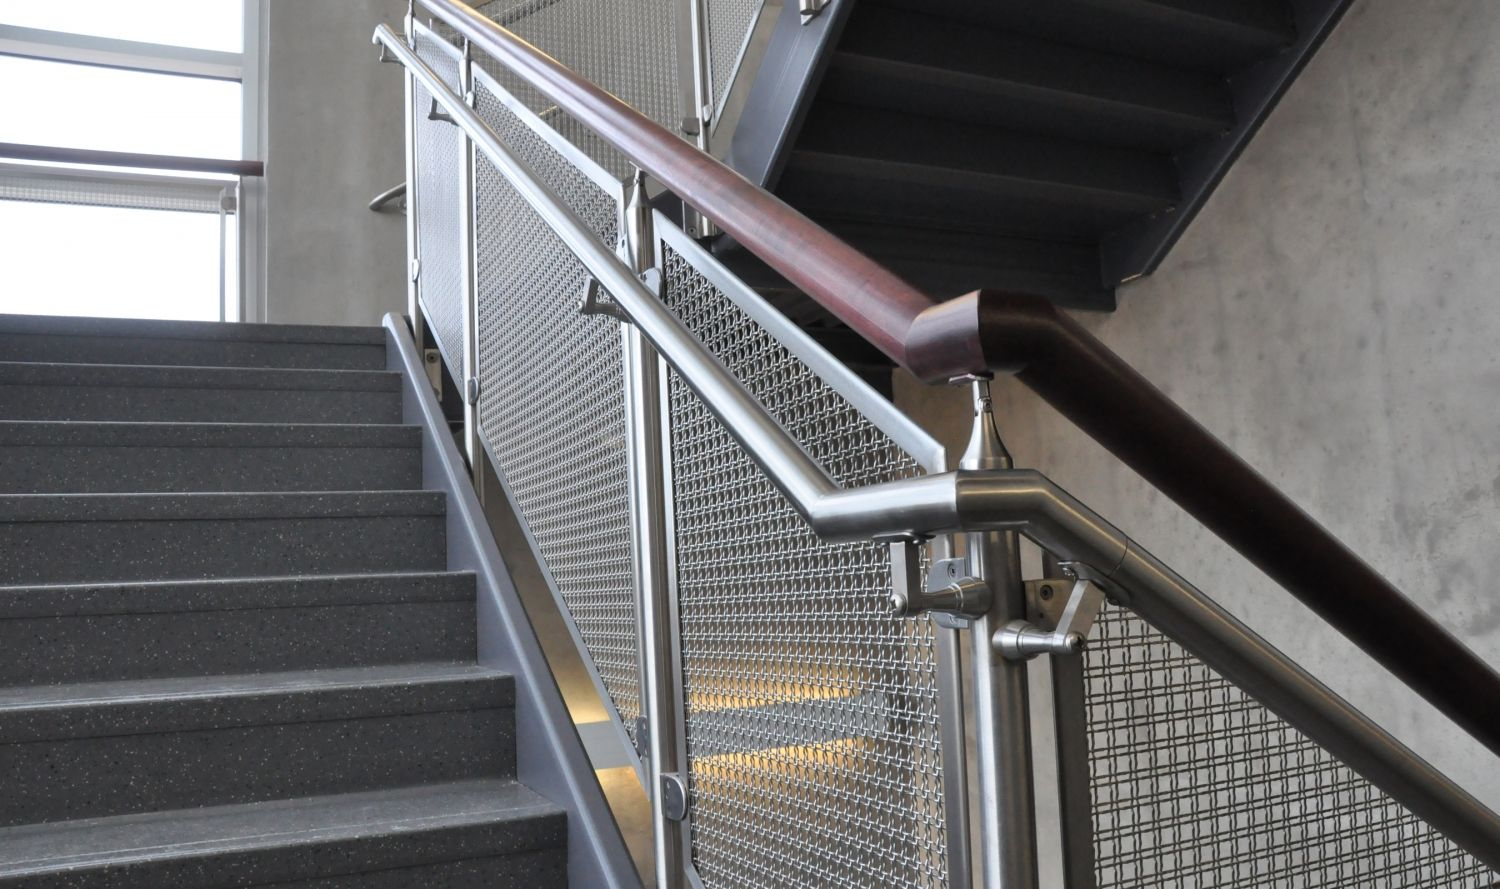 The openness of the stainless steel wire mesh railing